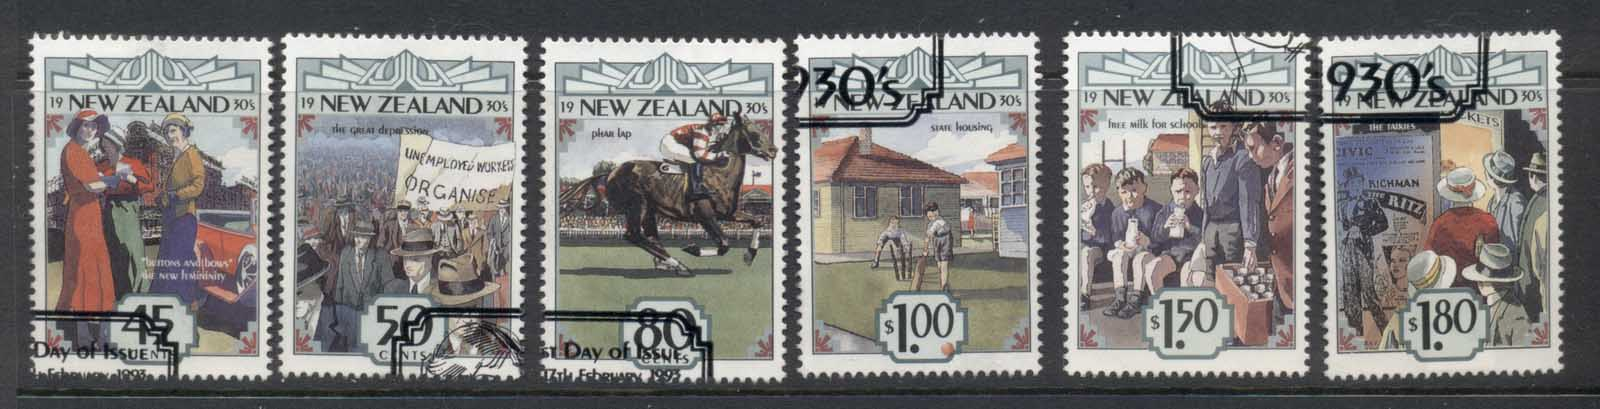 New Zealand 1993 The Emerging Years 1930'5 FU